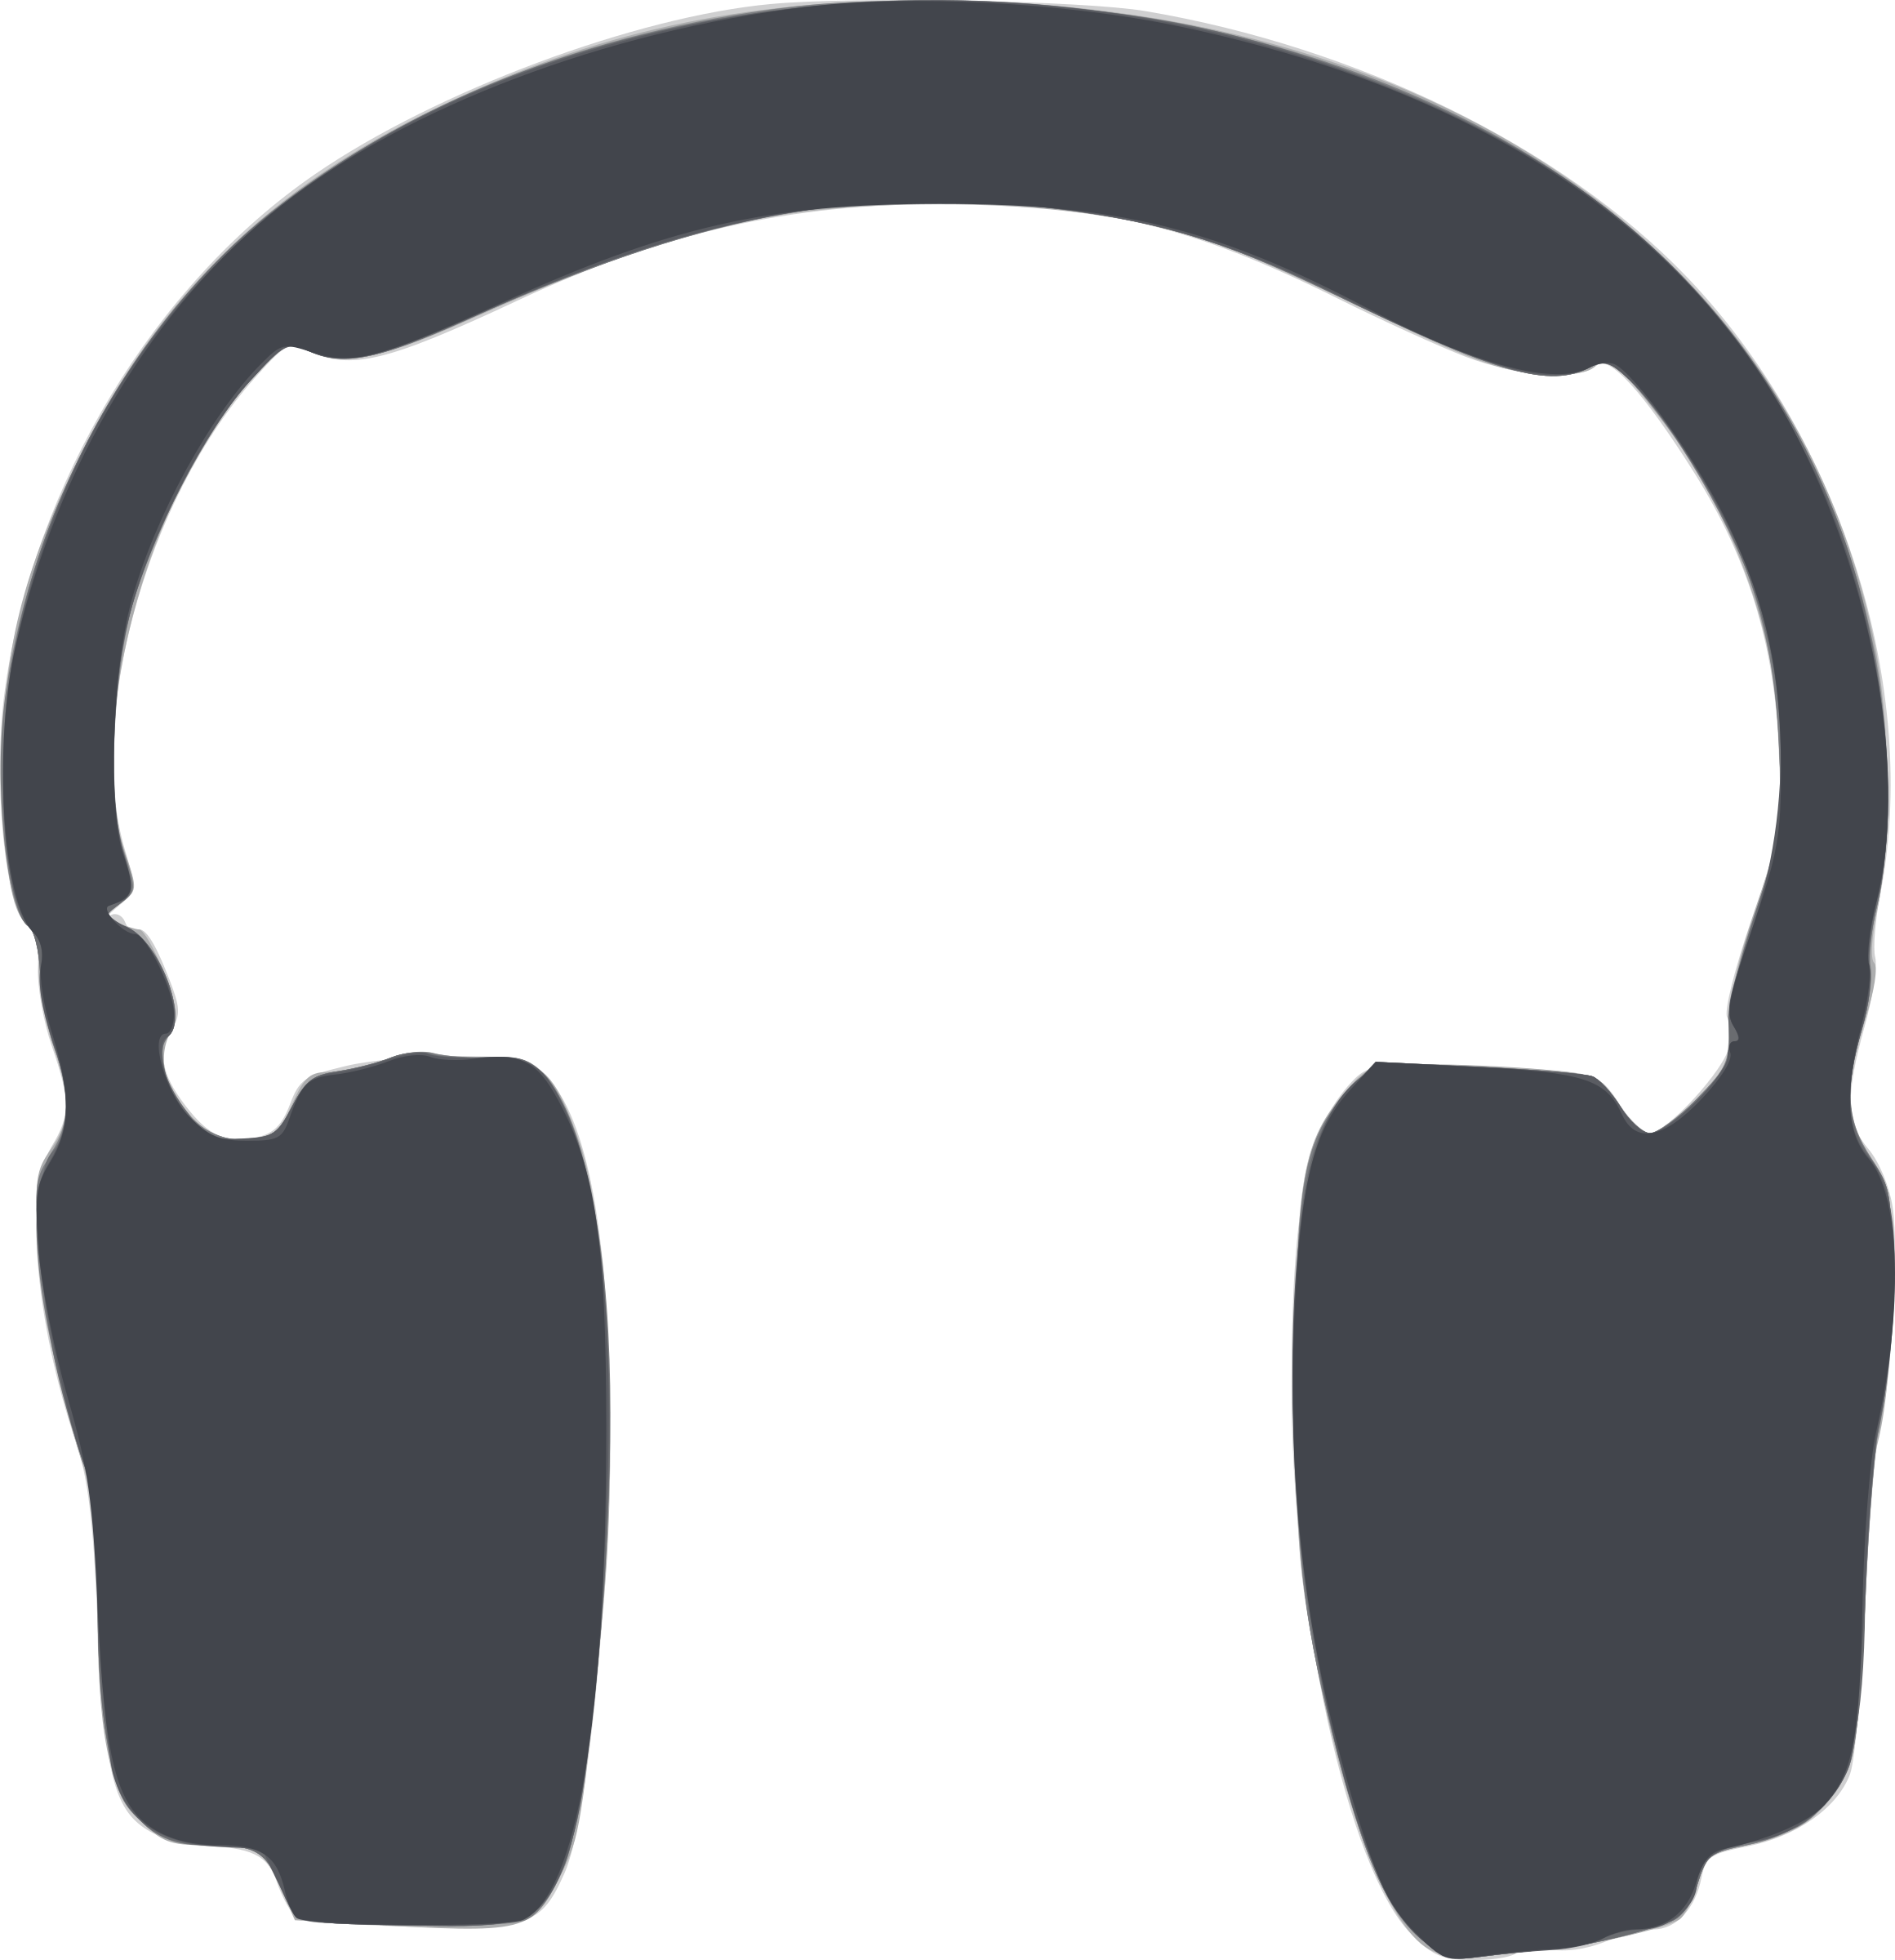 Headphone clipart silhouette. Musique icons png free